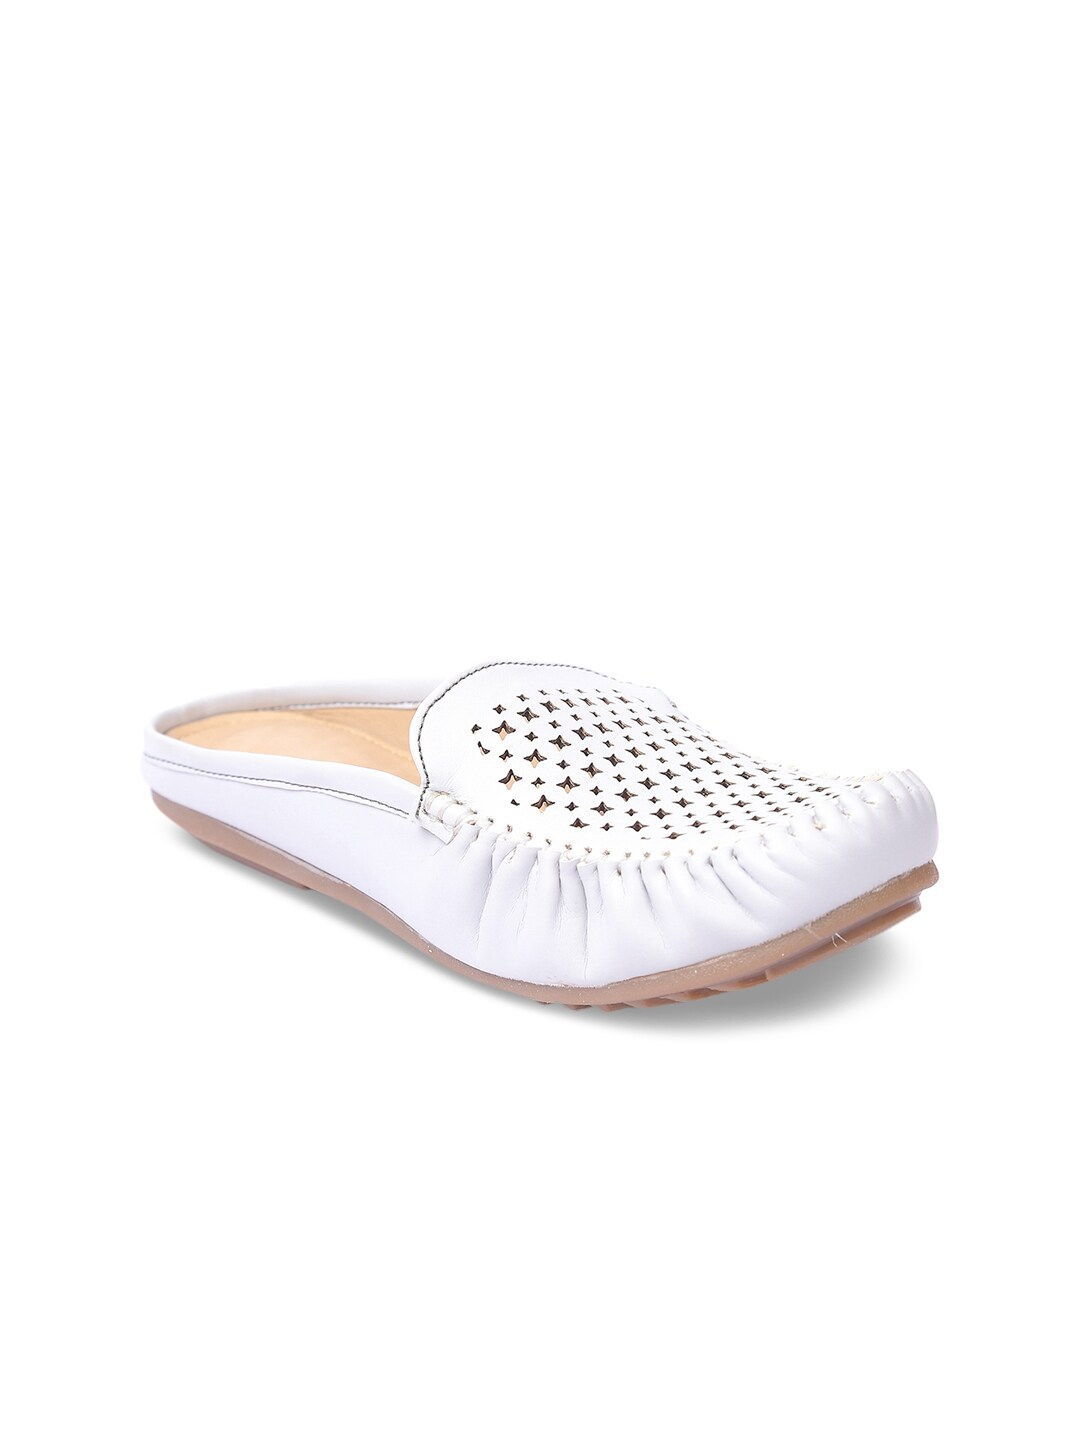 Lovely Chick Women White Mules image